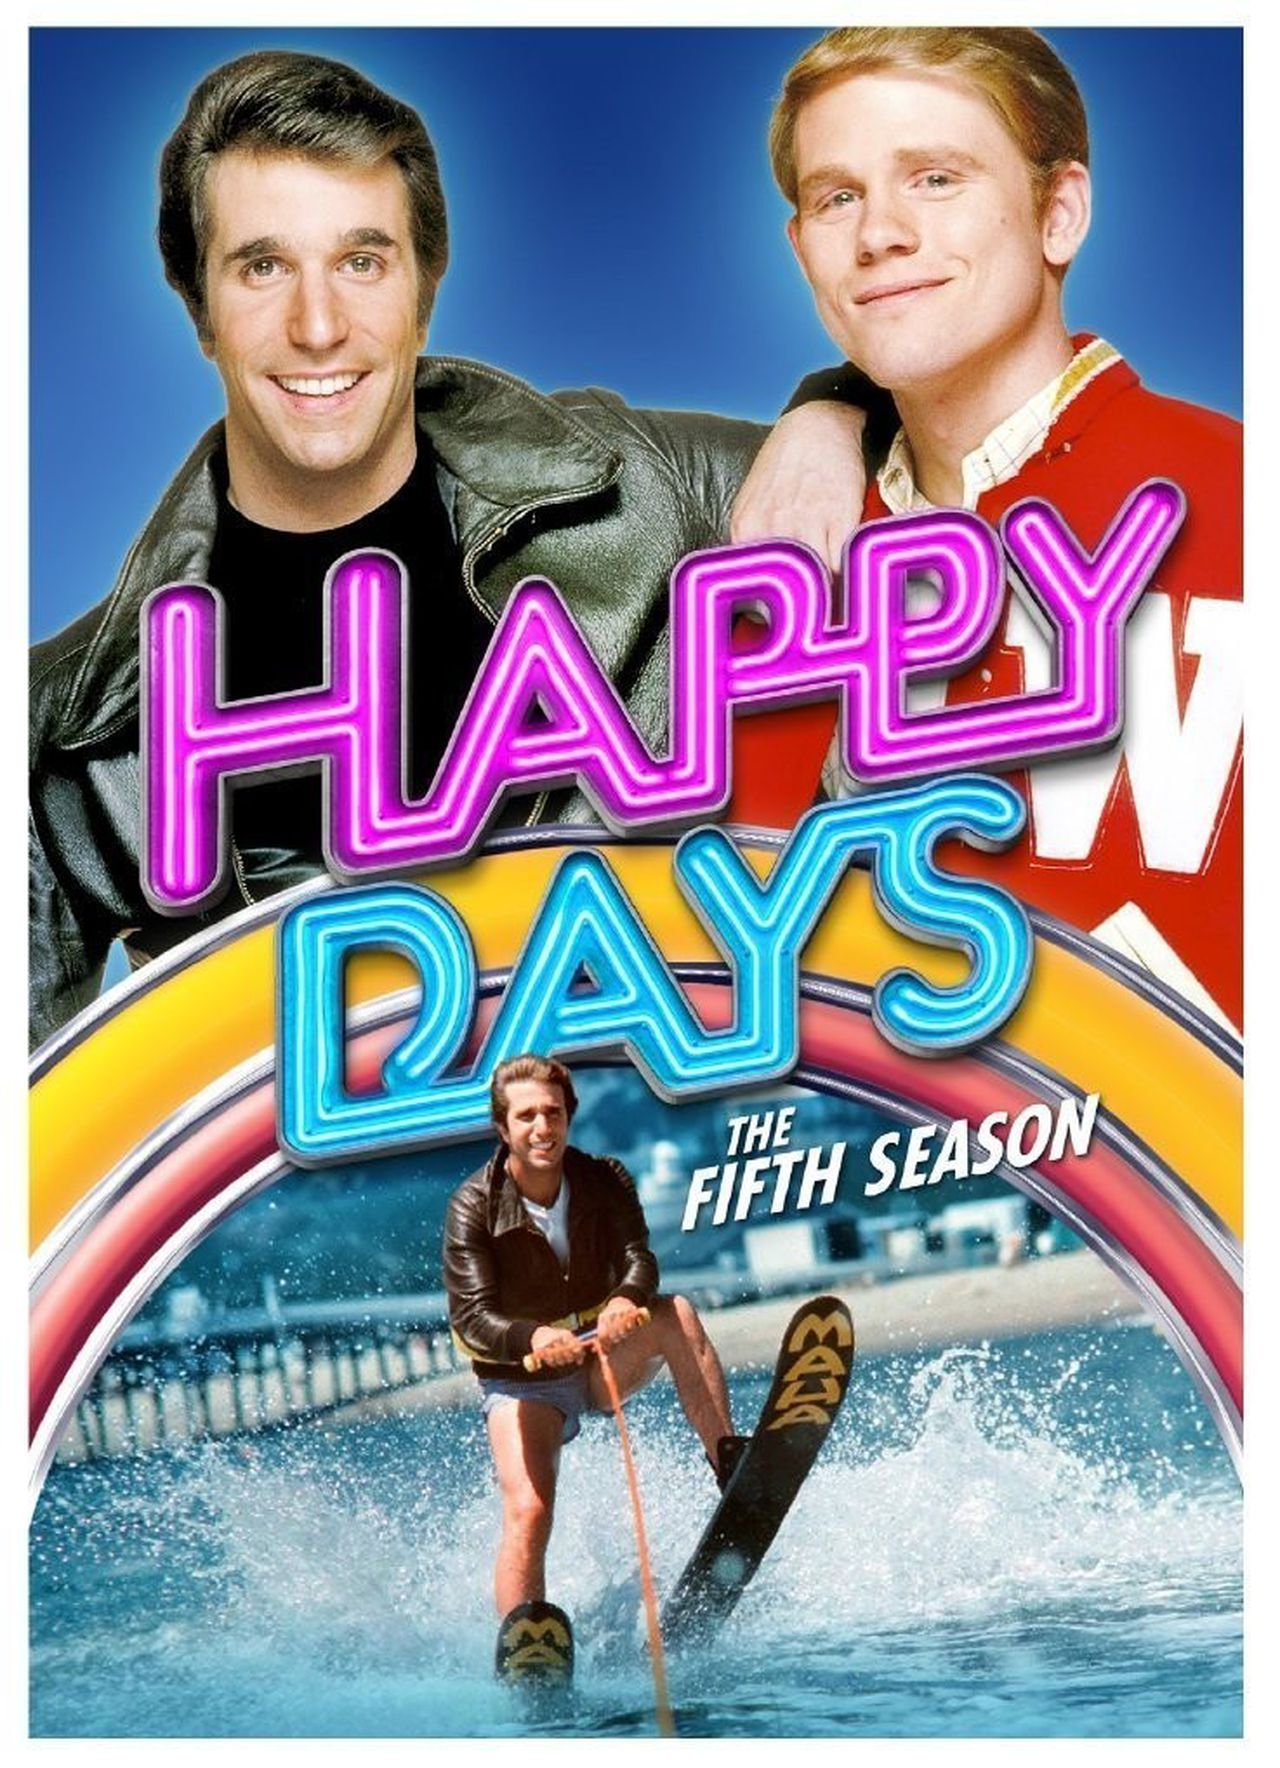 happy-days-season-five-dvd-71qqkbei2bl-sl1018-jpg-a188ebdd460536a4.jpg